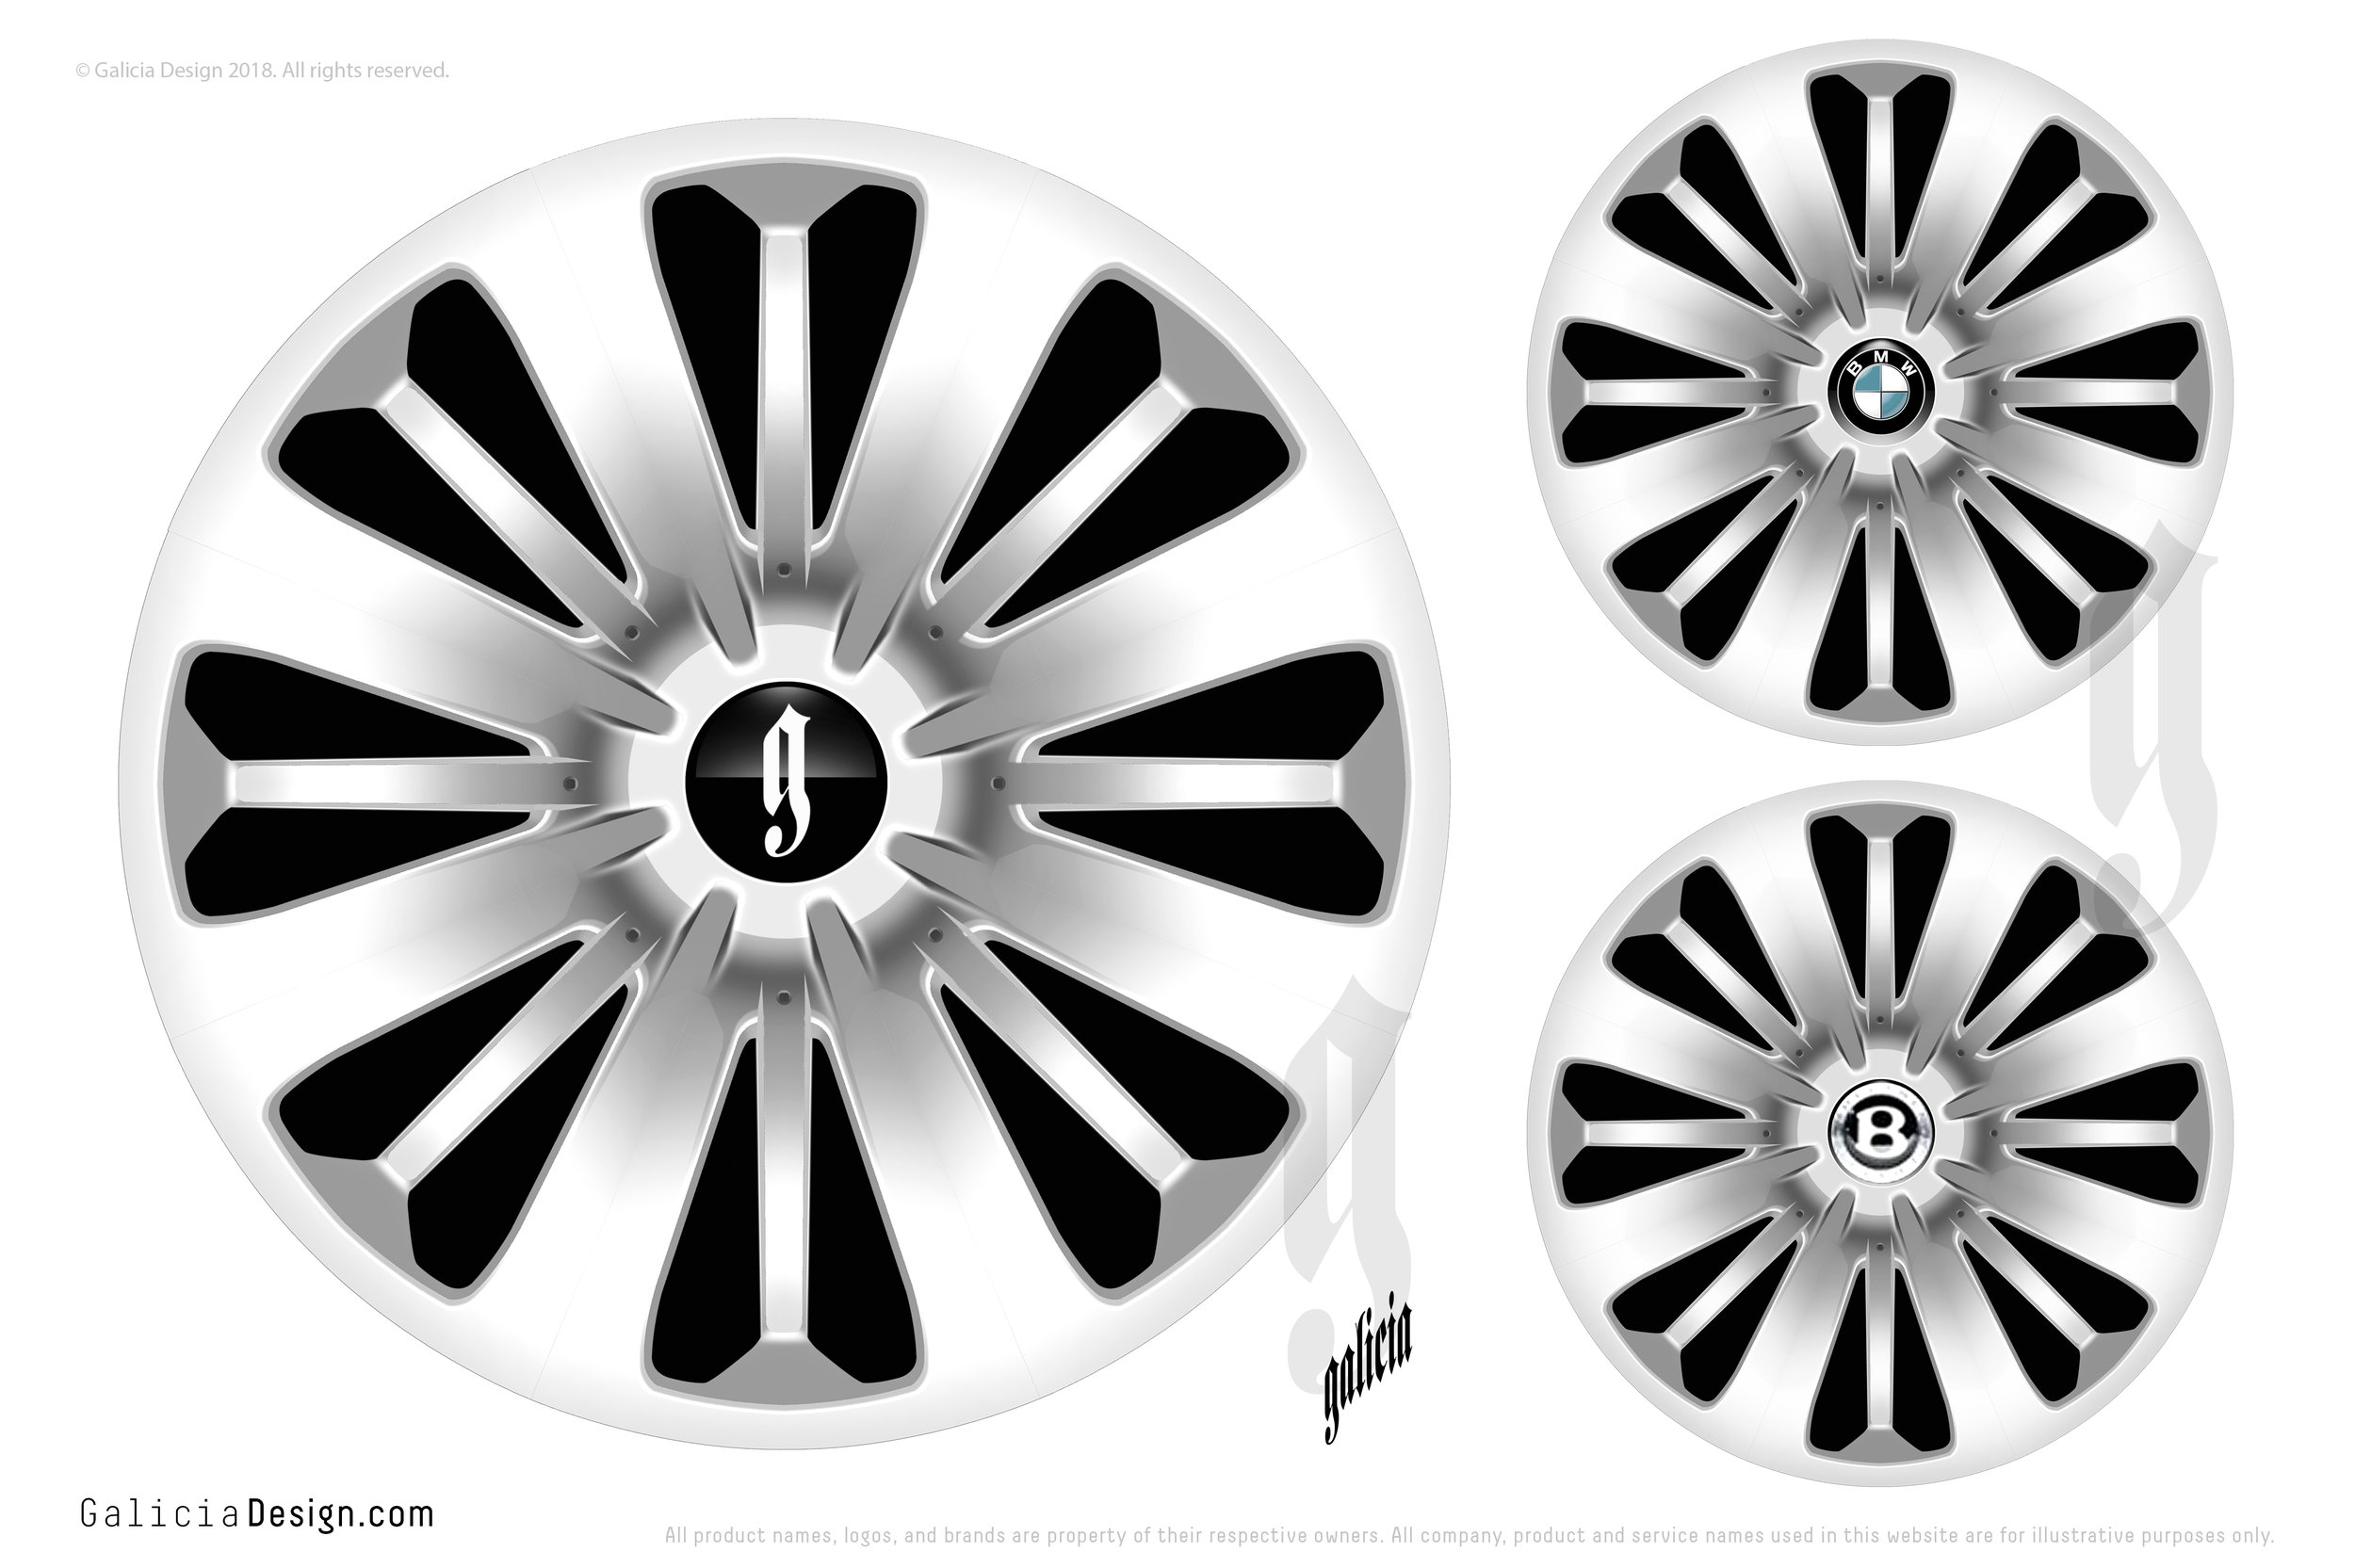 8 spoke %22multi%22 wheel - galiciadesign_com.jpg